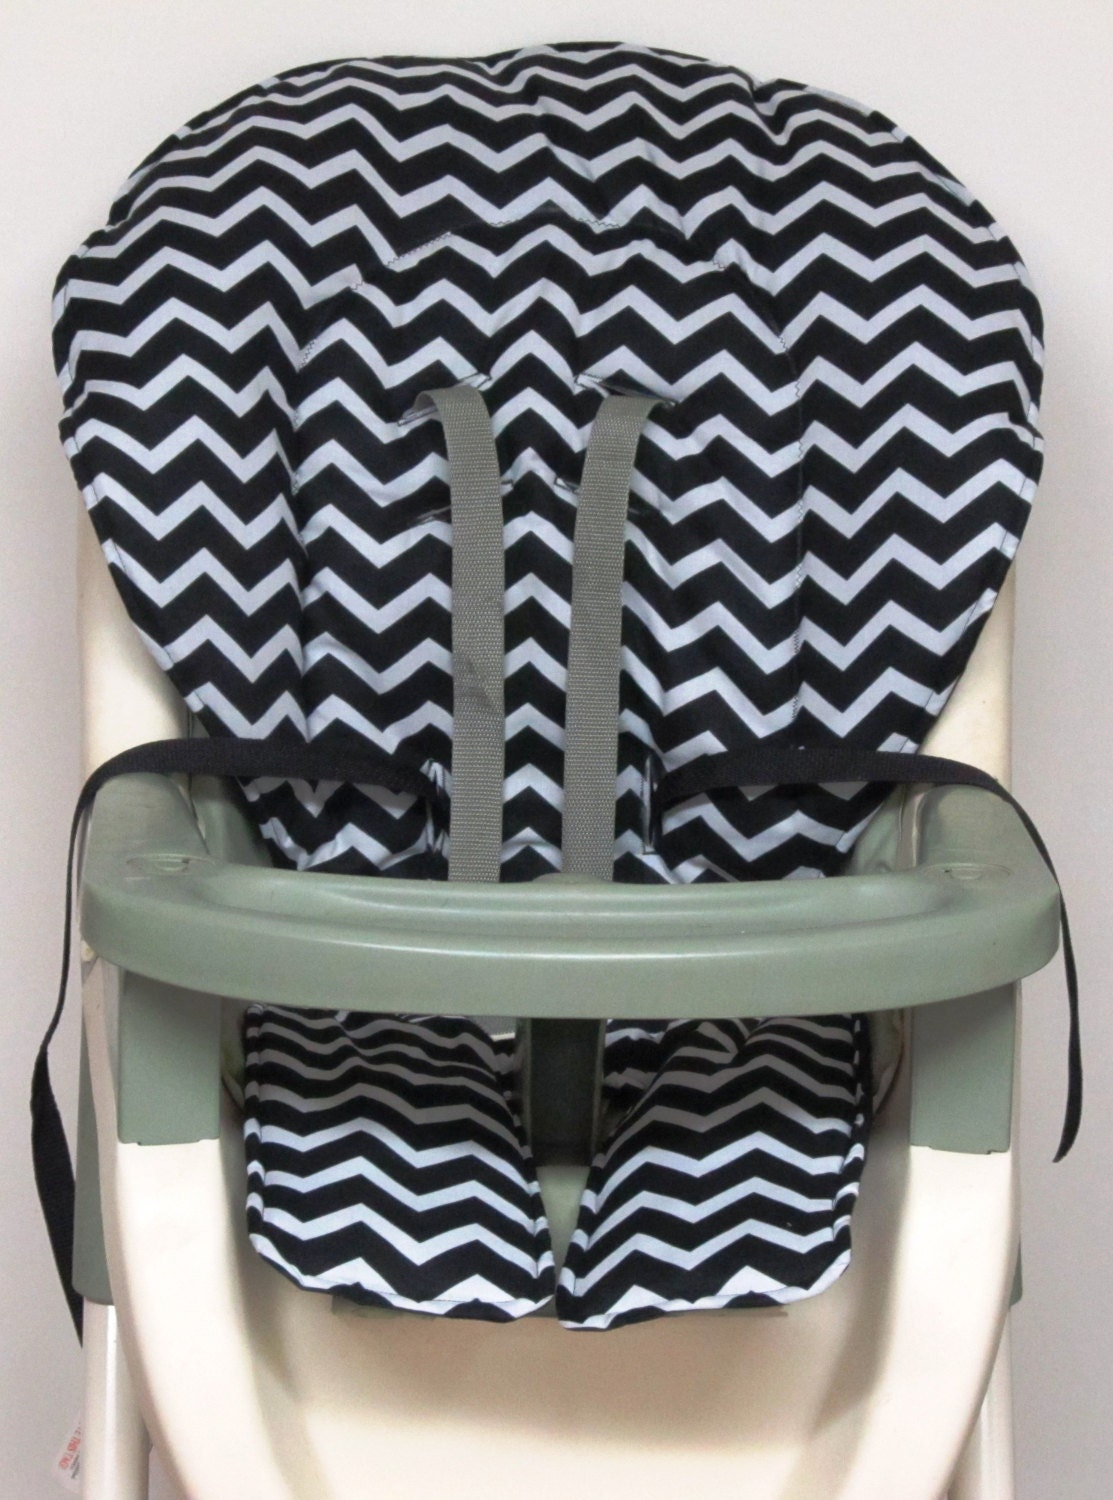 High Chair Covers Graco High Chair Cover Pad Replacement Black And Pale Gray